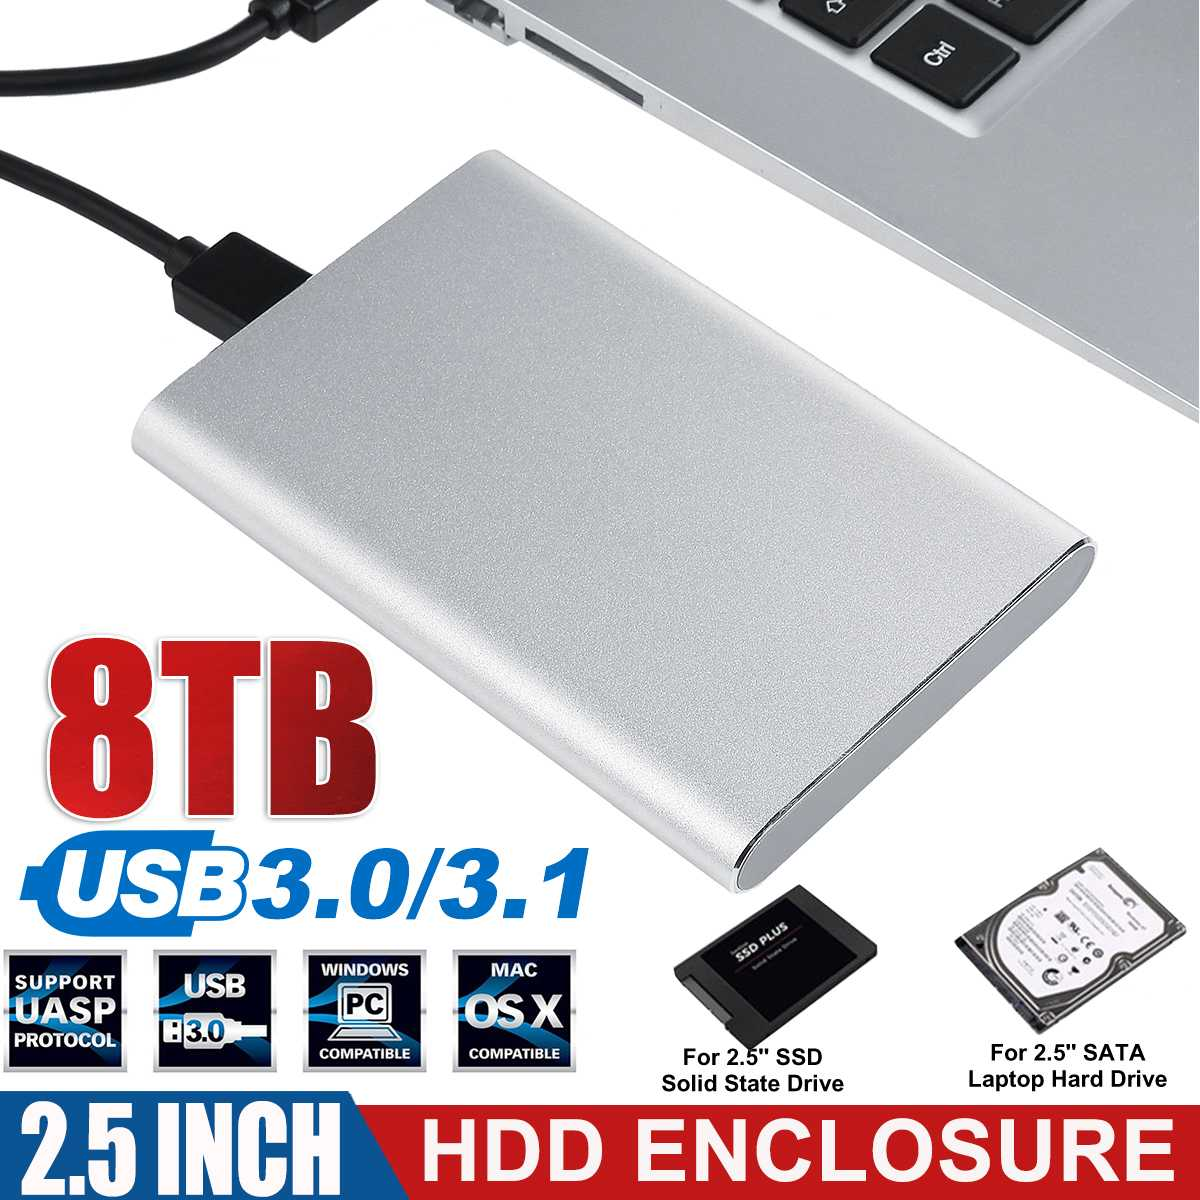 Professional USB3.0/3.1 HDD Enclosure 2.5 Inch Serial Port SATA SSD Hard Drive Case Support 8TB Memory Mobile External HDD Case